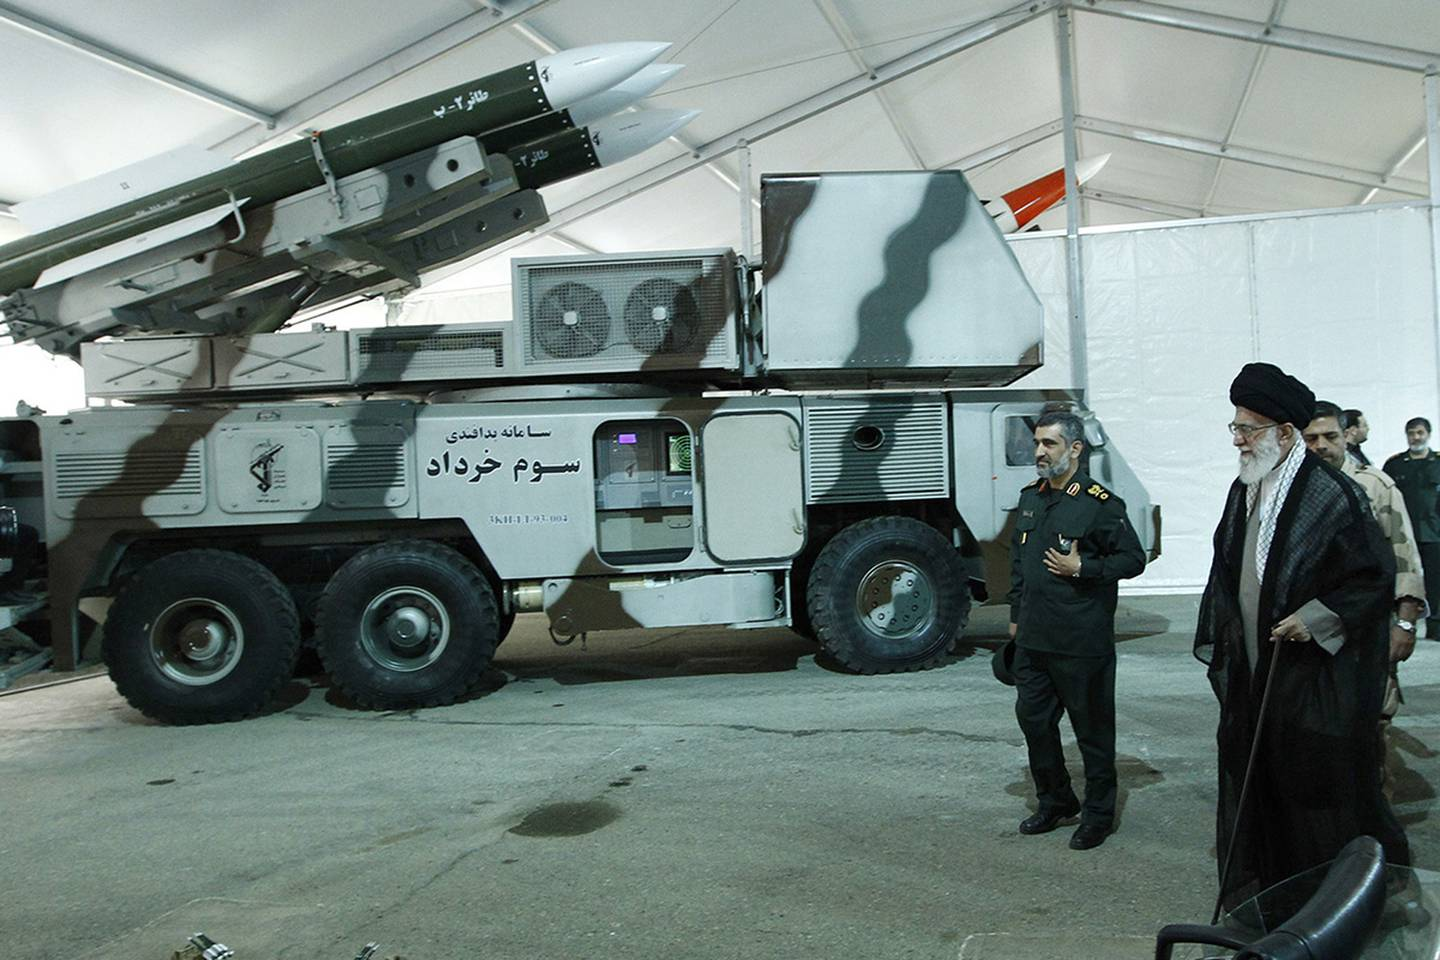 Iran said it has used its air defense system known as Third of Khordad, seen here on May 11, 2014, to shoot down the drone — a truck-based missile system that can fire up to 18 miles (30 kilometers) into the sky.